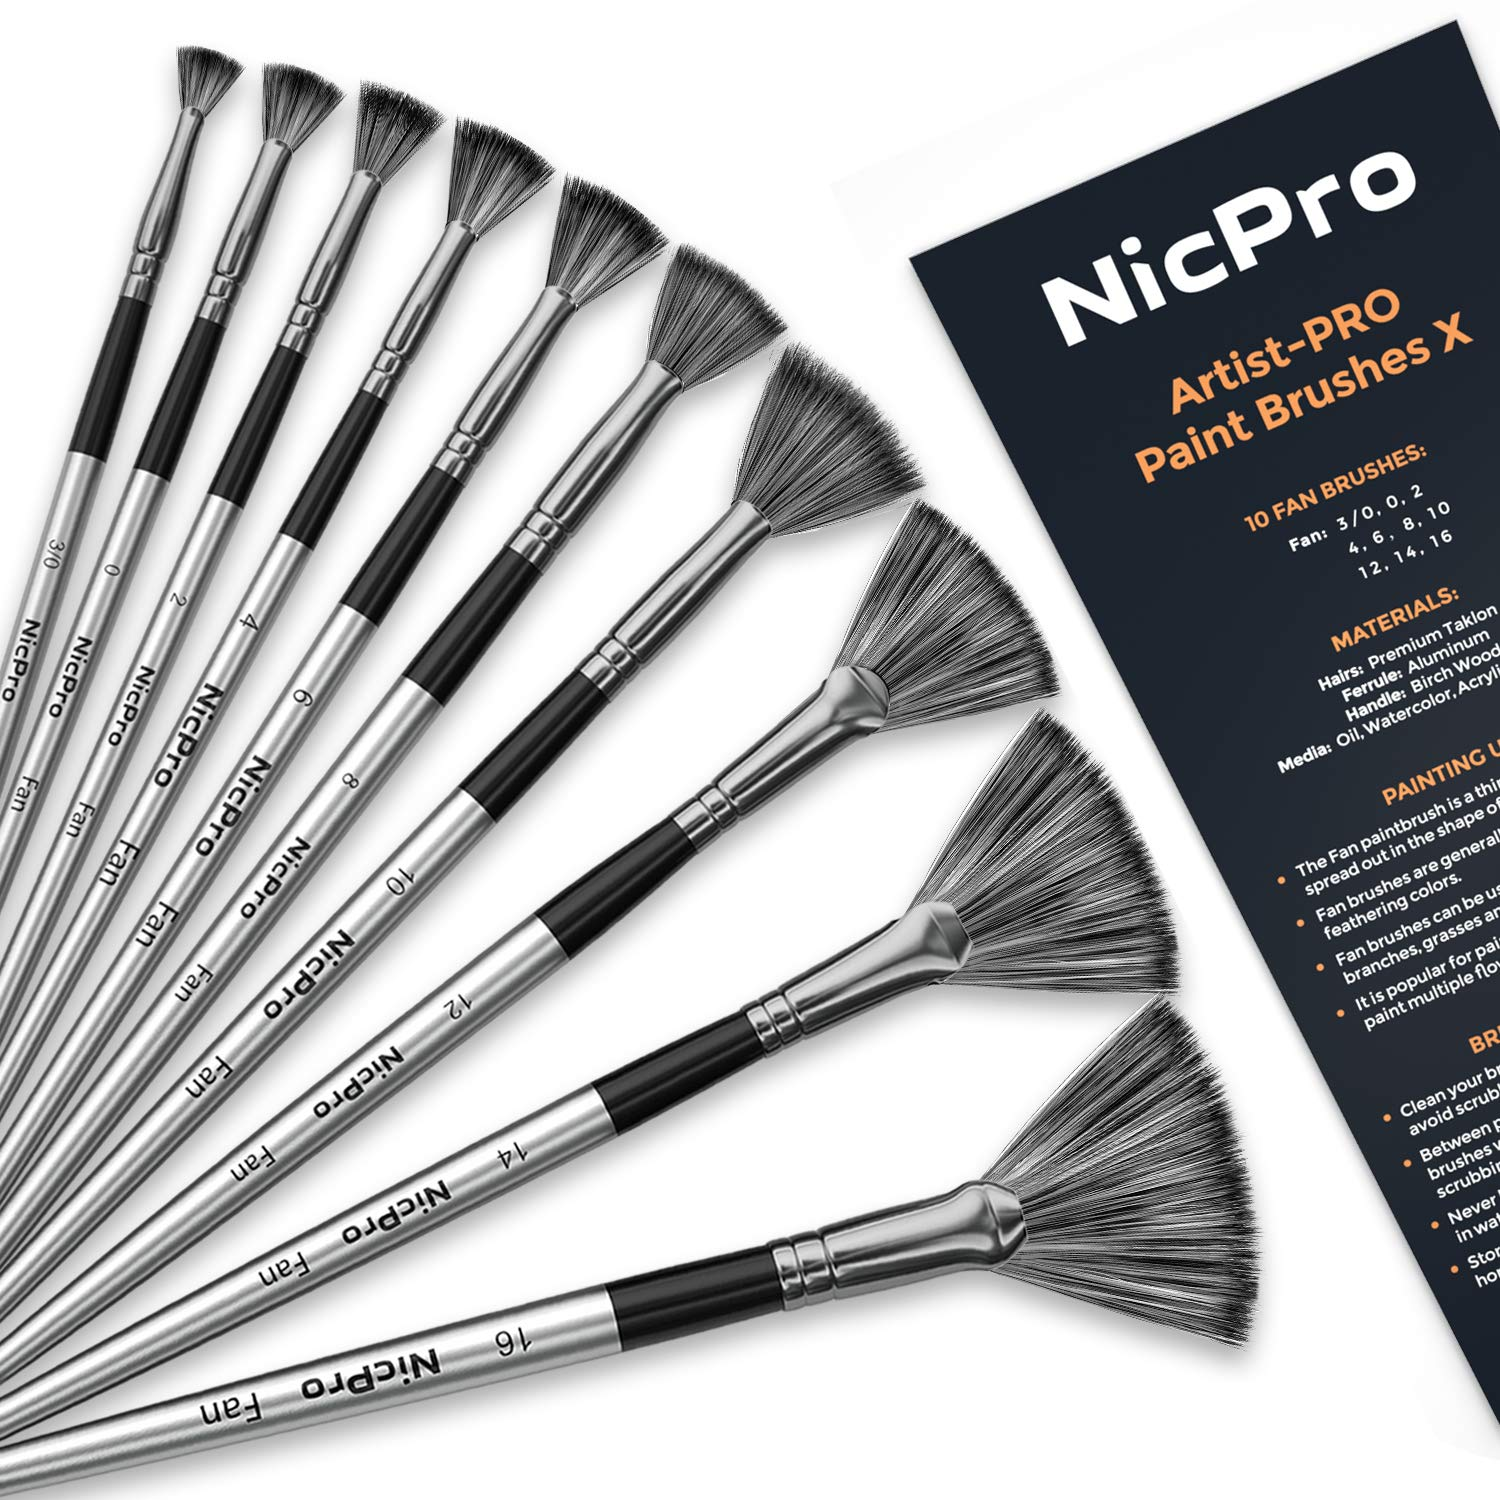 Nicpro Fan Paint Brushes 10 PCS Artist Painting Brush Set for Acrylic Watercolor Oil Painting by Nicpro